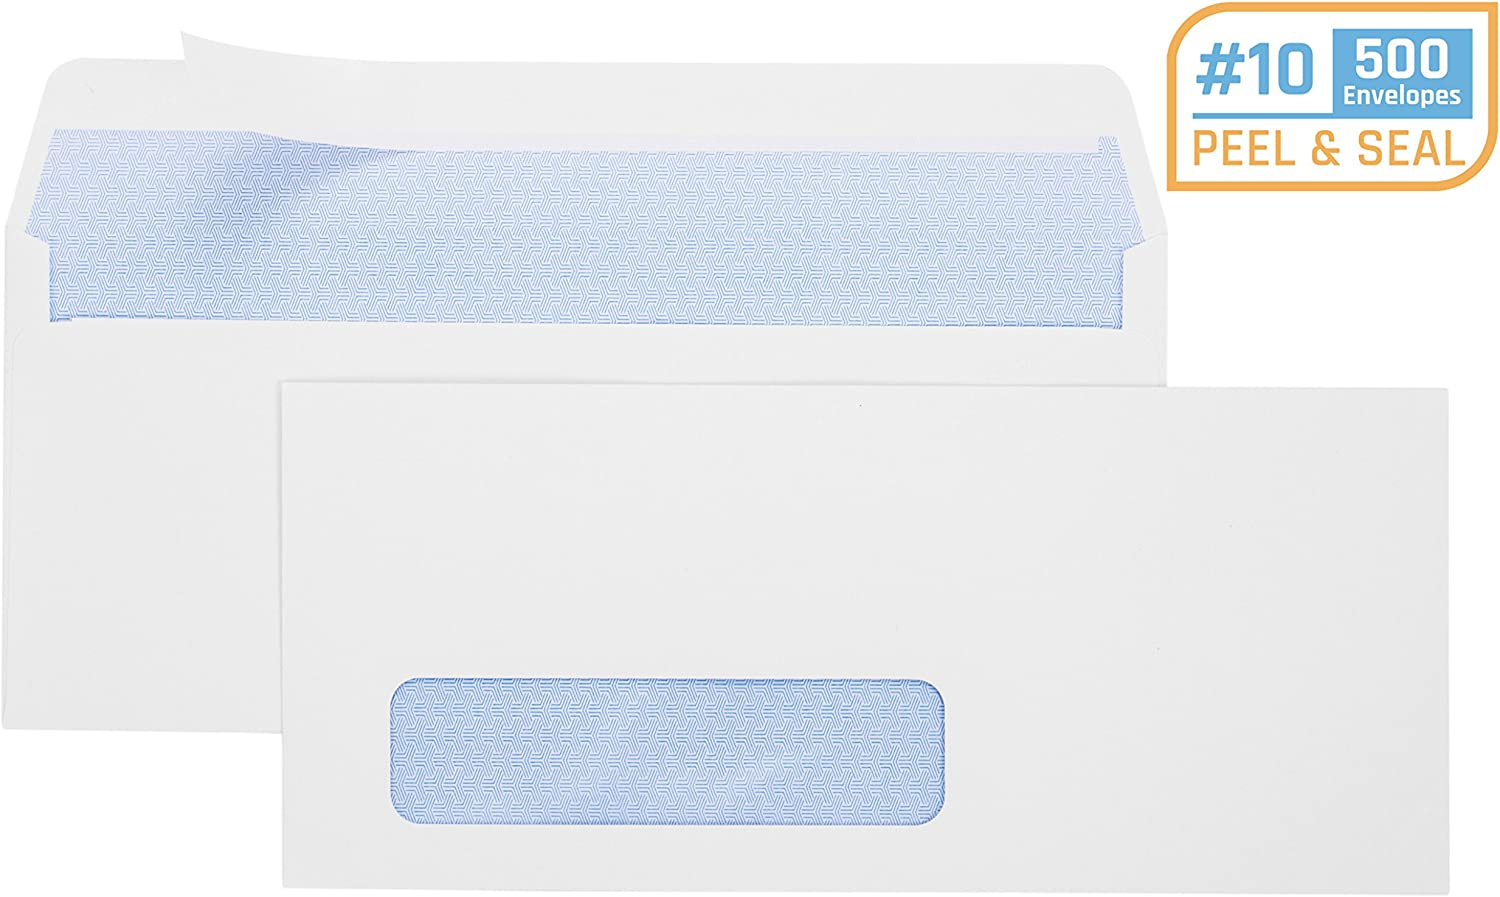 Office Deed 500 #10 Envelopes SELF SEAL Business Envelope Single Window Design, Security Tint Pattern for Secure Mailing, Invoices, Statements & Legal Document, 4-1/8 x 9-1/2 Inches